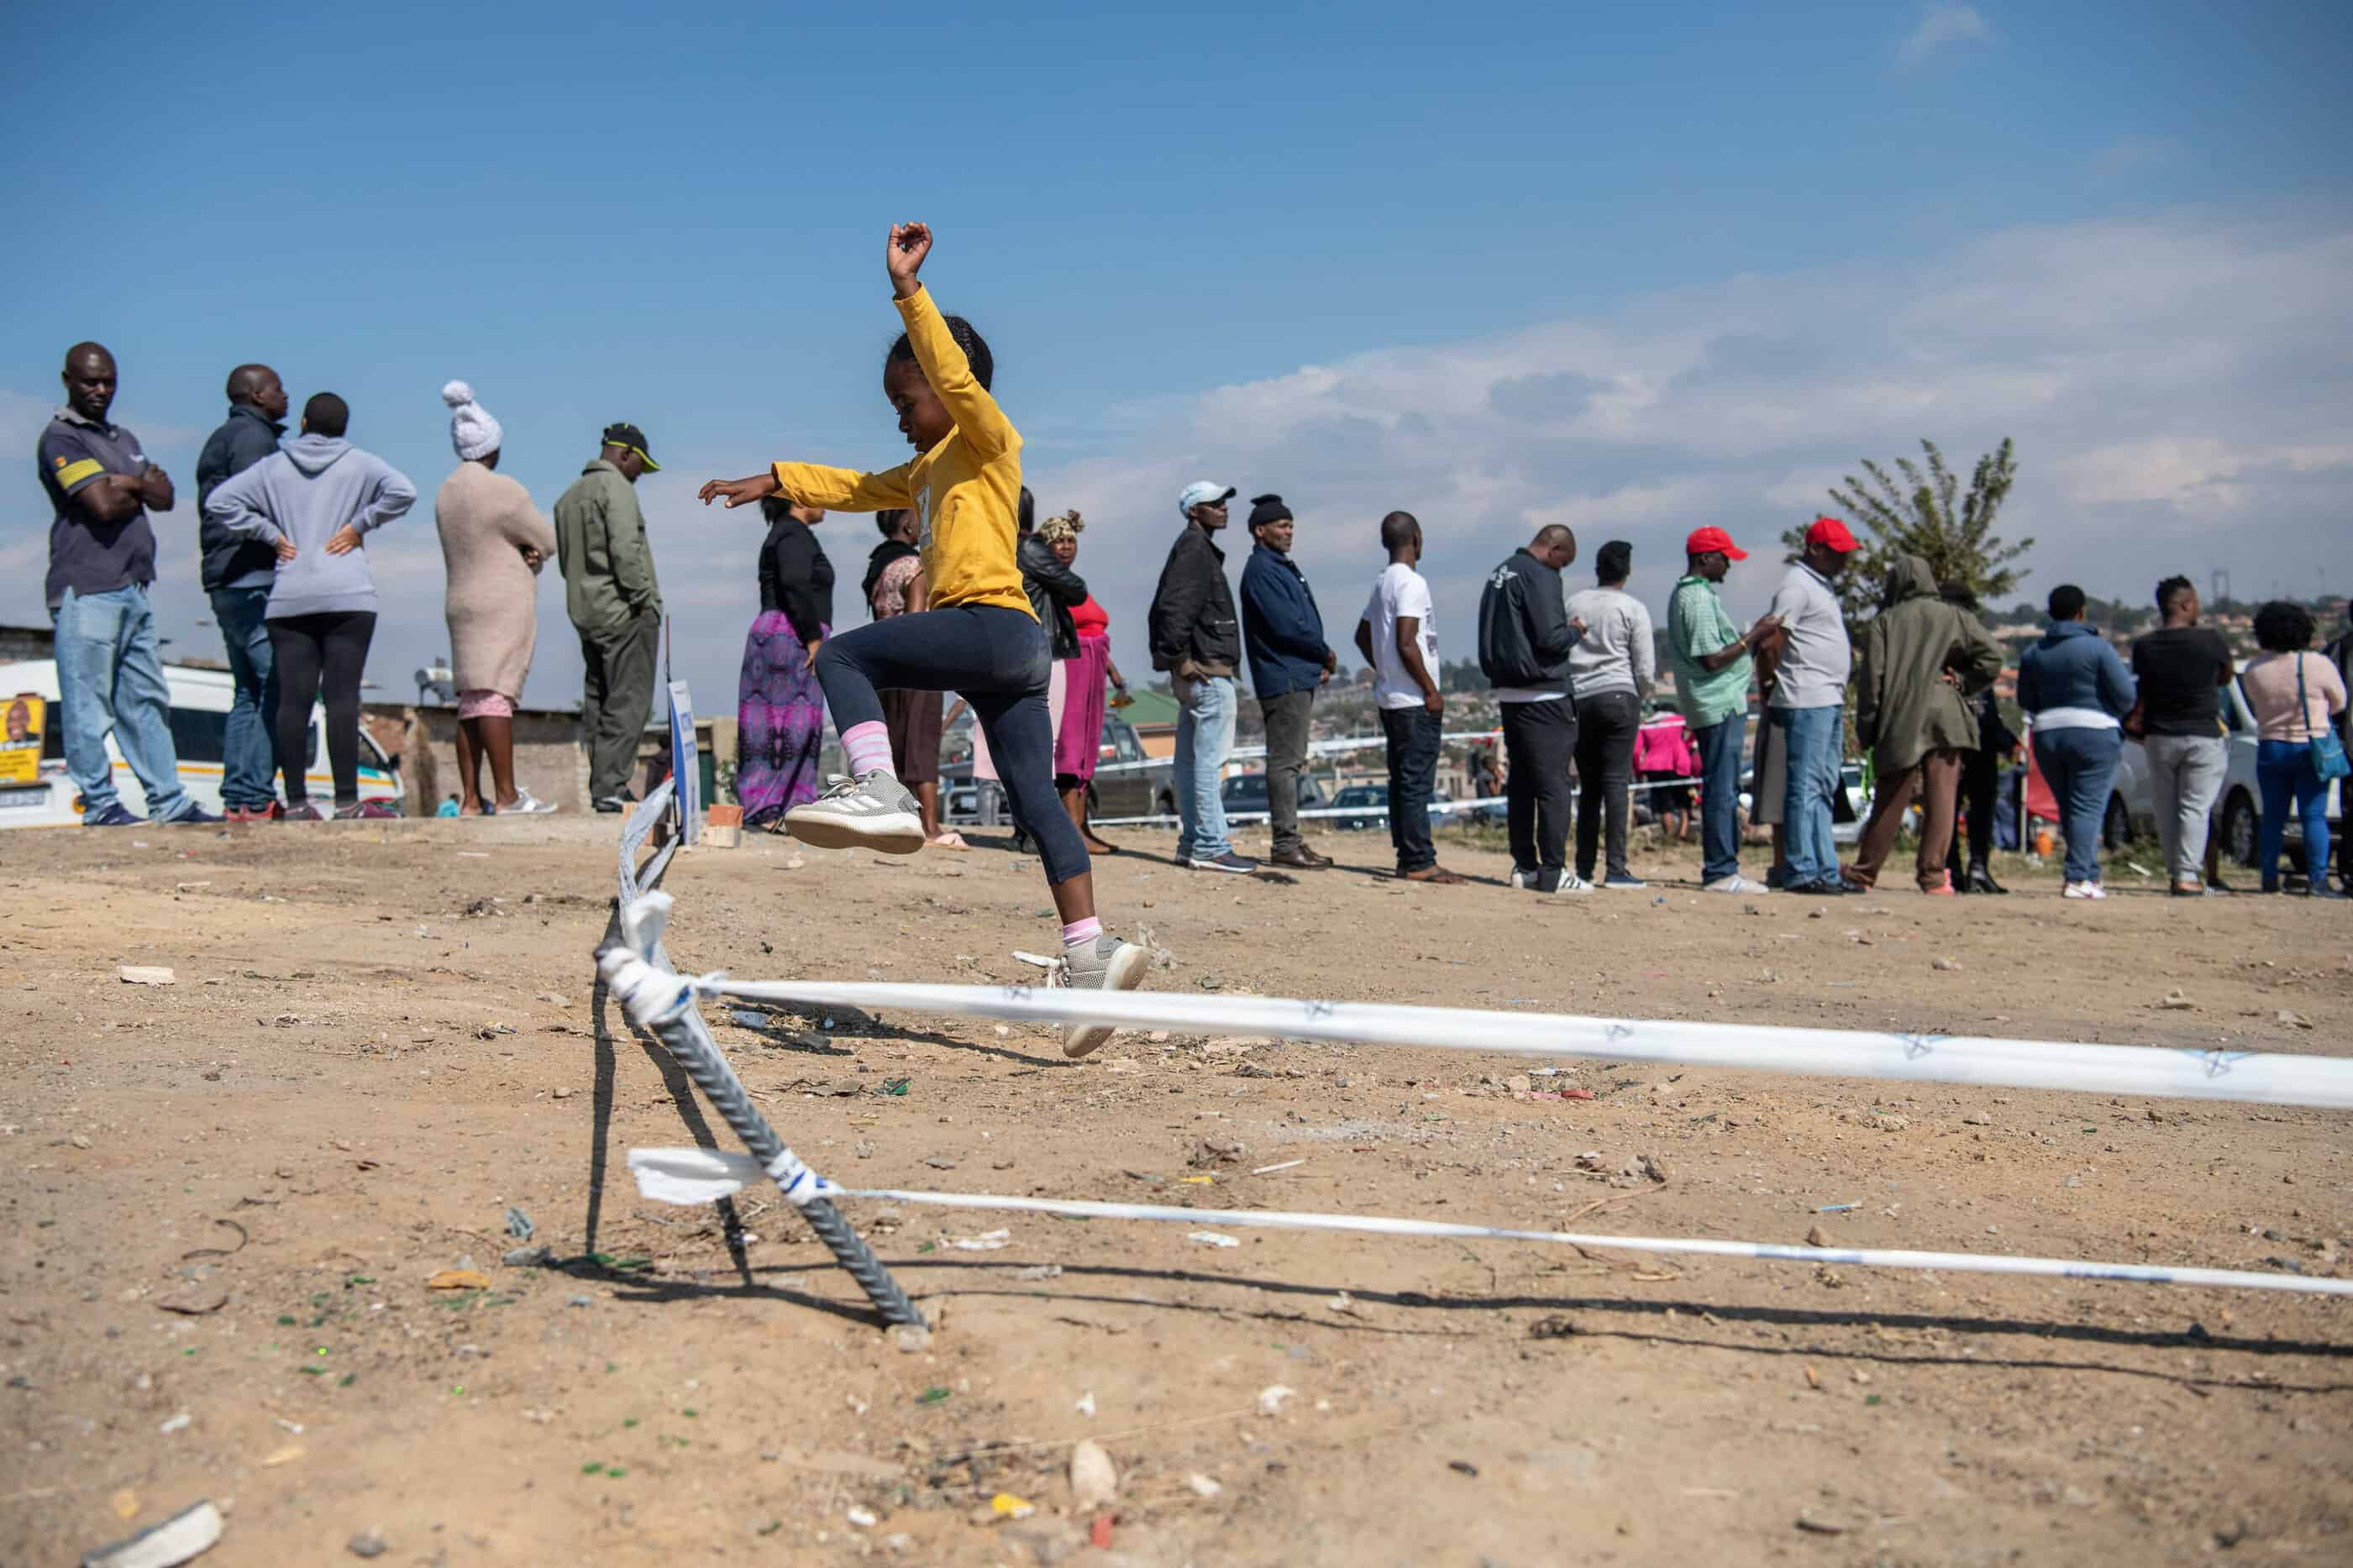 8 May 2019: A young girl plays near a voting station in Alexandra as residents line up to vote in the 8 May elections.